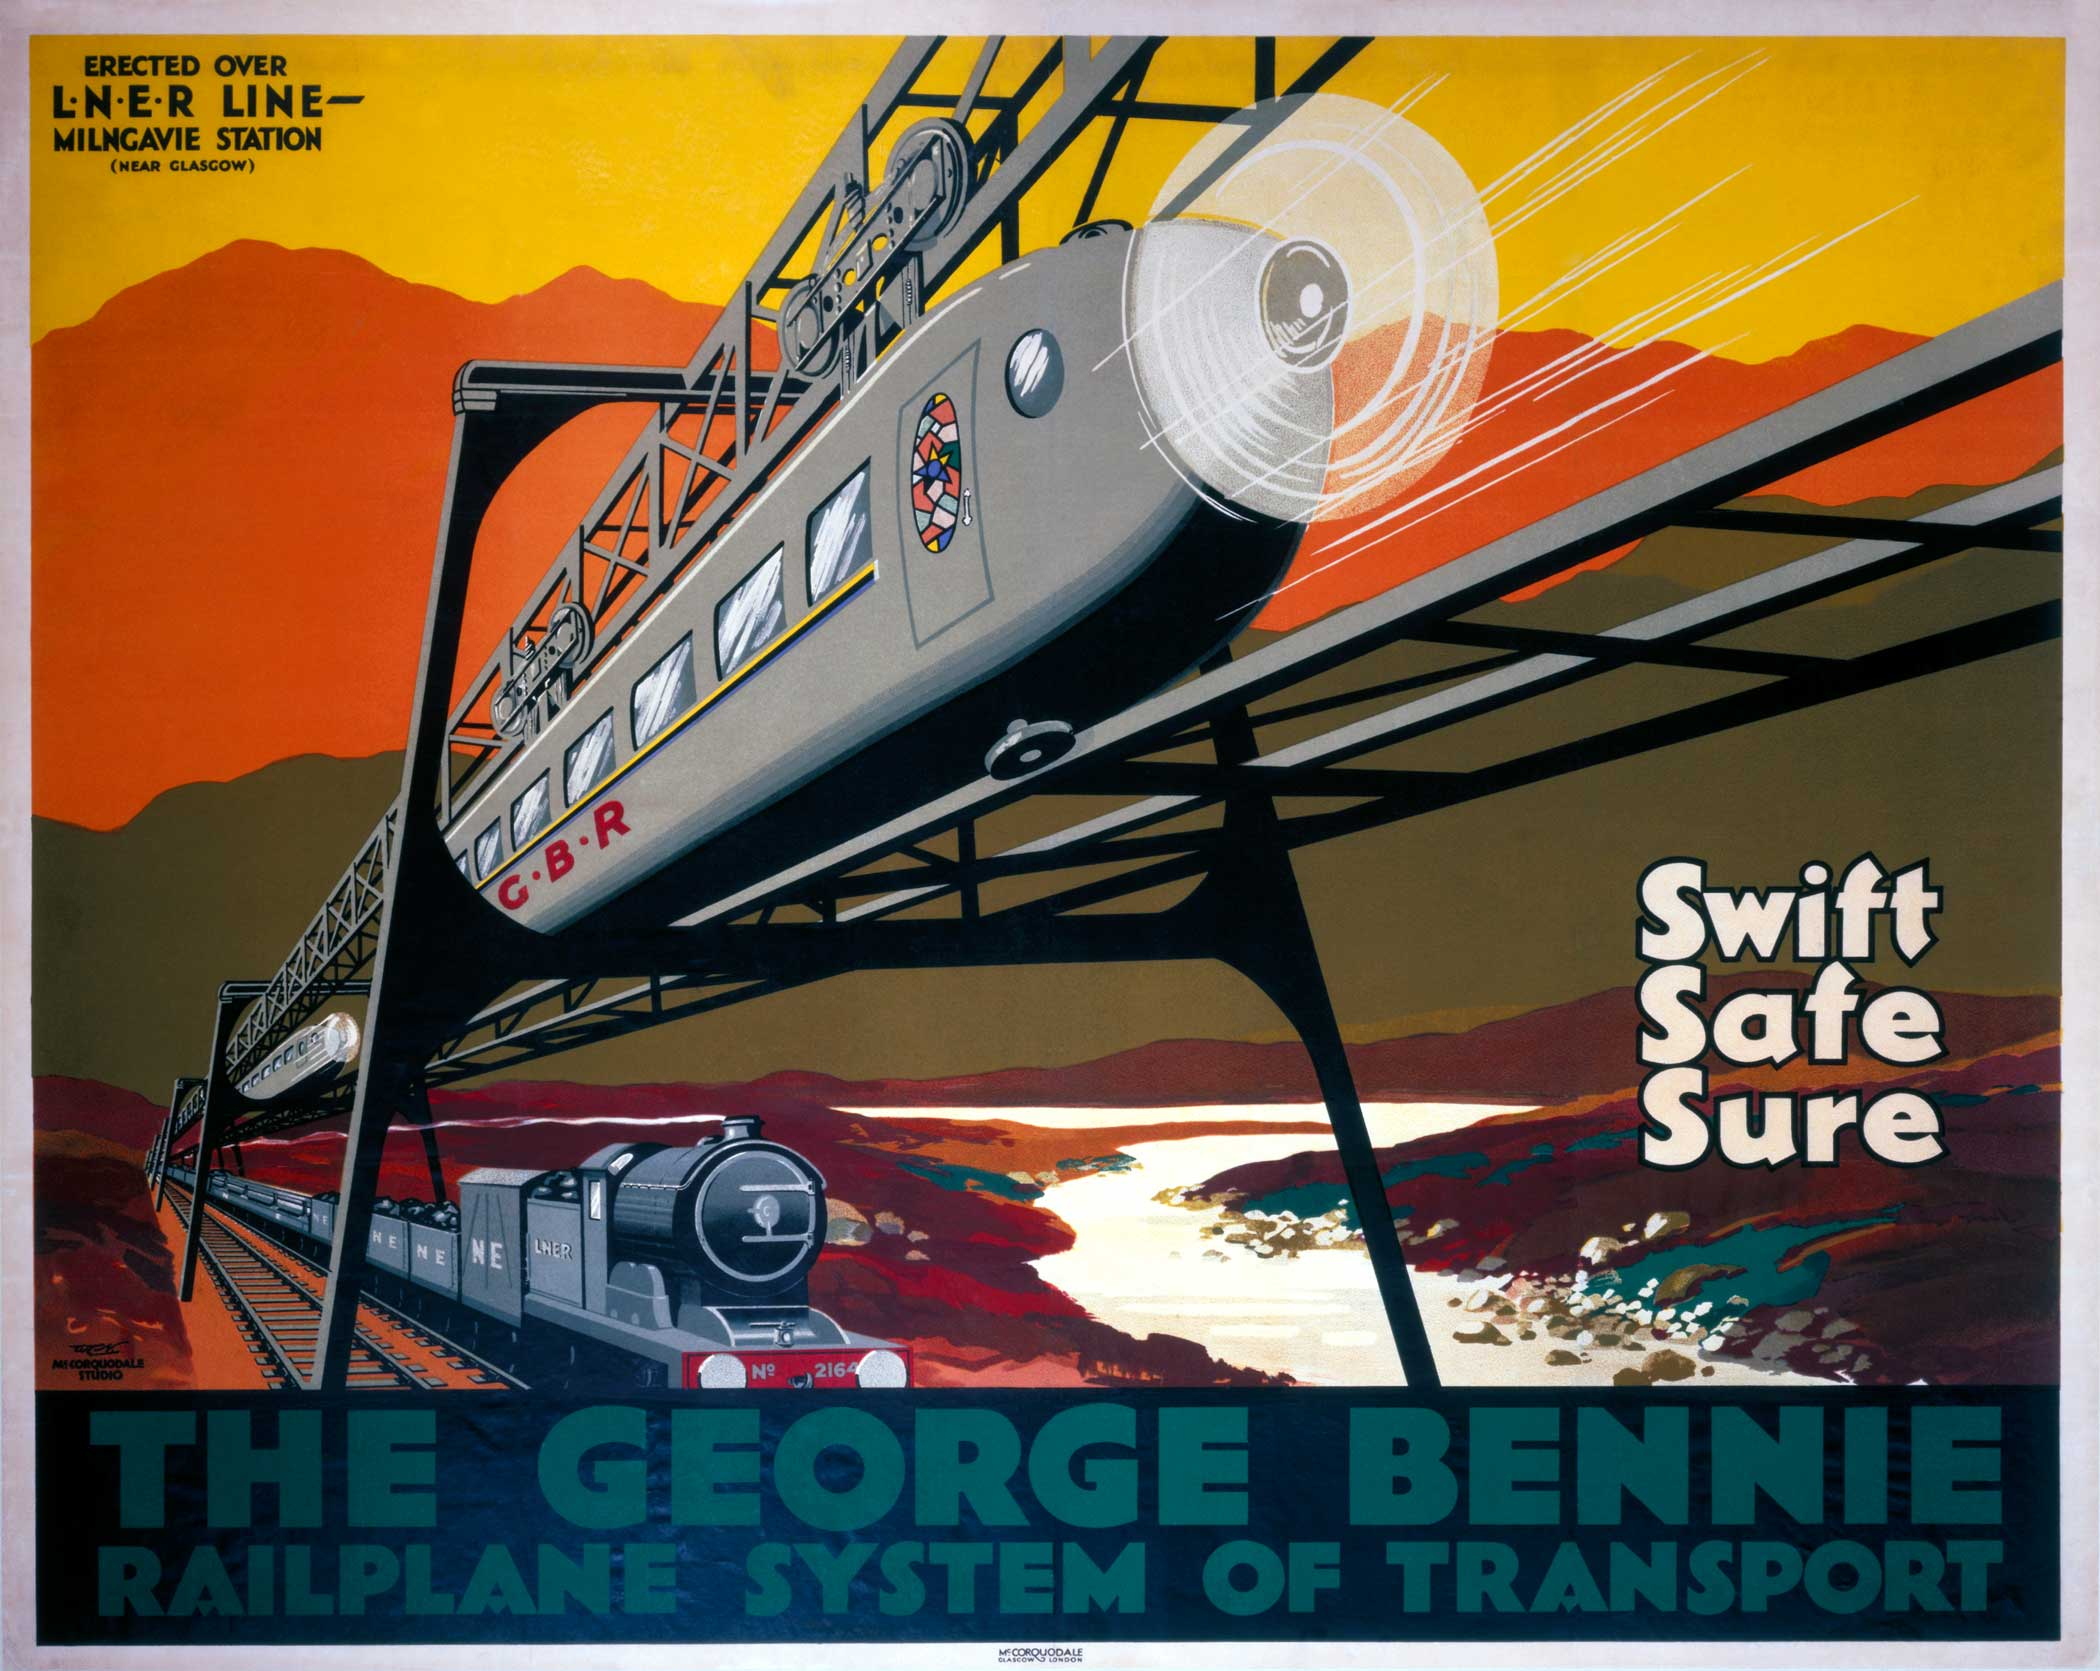 The George Bennie Railplane System, a suspended monorail for passengers set above the existing railway with a LNER locomotive traveling underneath. The project, funded by George Bennie, was set up at Burnbrae, near Milngavie, Scotland as an experiment. It was dismantled in 1956.